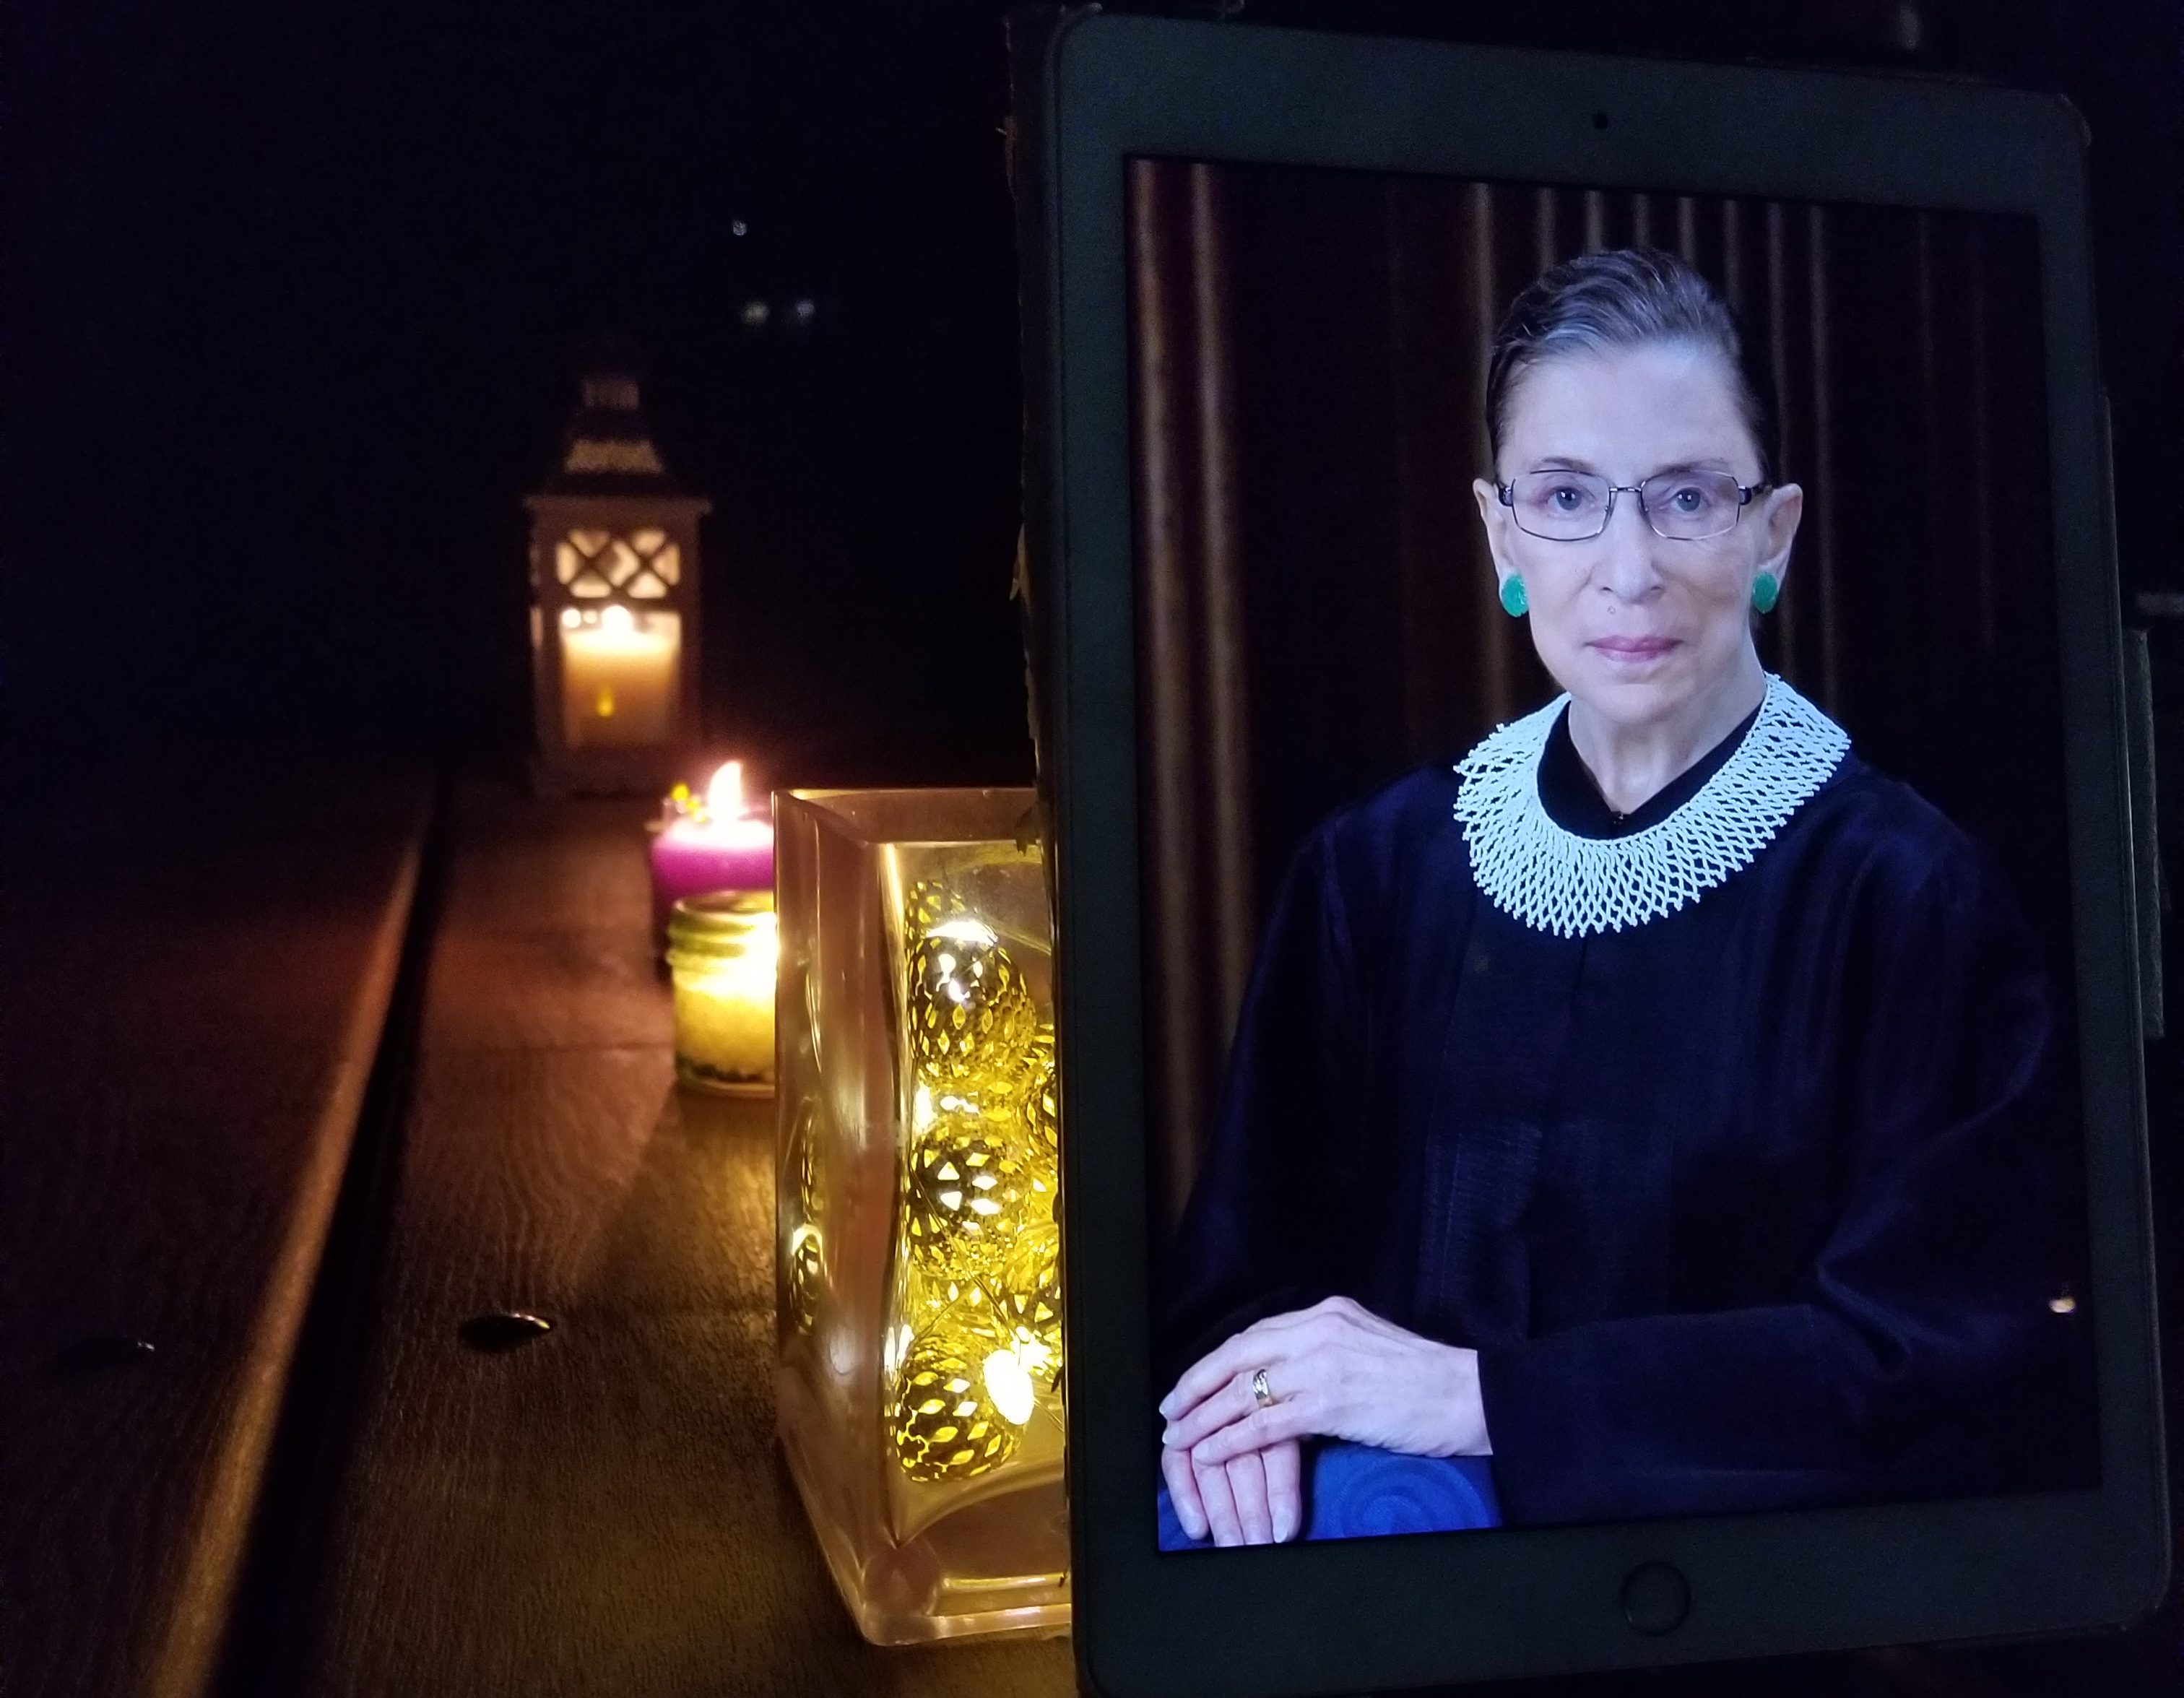 Image of RBG at a candlelight vigil.